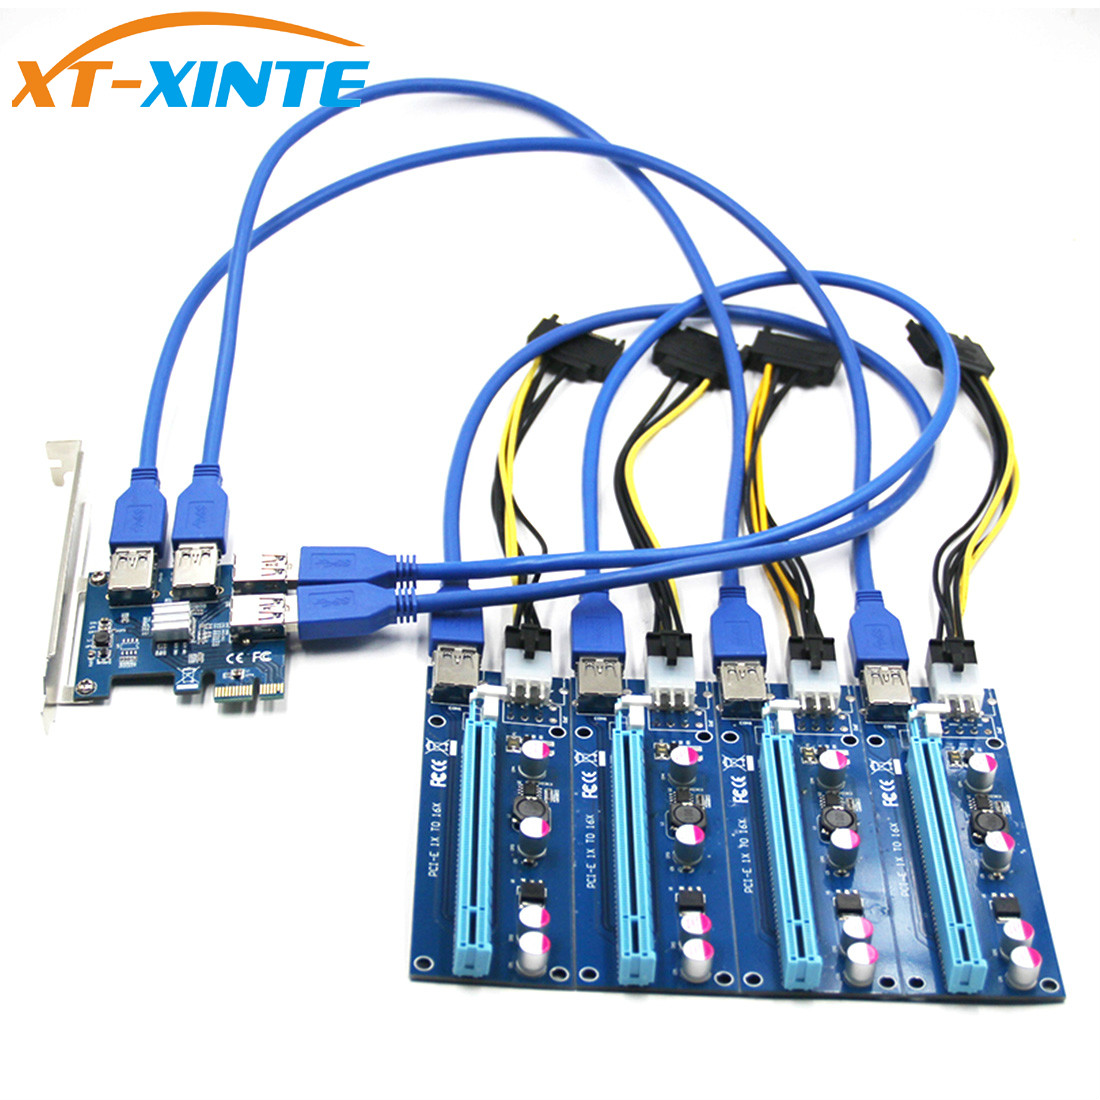 USB 3.0 PCI-E Express 1x to 16x Extender Riser Card Adapter Pcie 1 to 4 USB Convertor Graphics Video card for Miner BTC Litcoin азимов а путеводитель по шекспиру английские пьесы